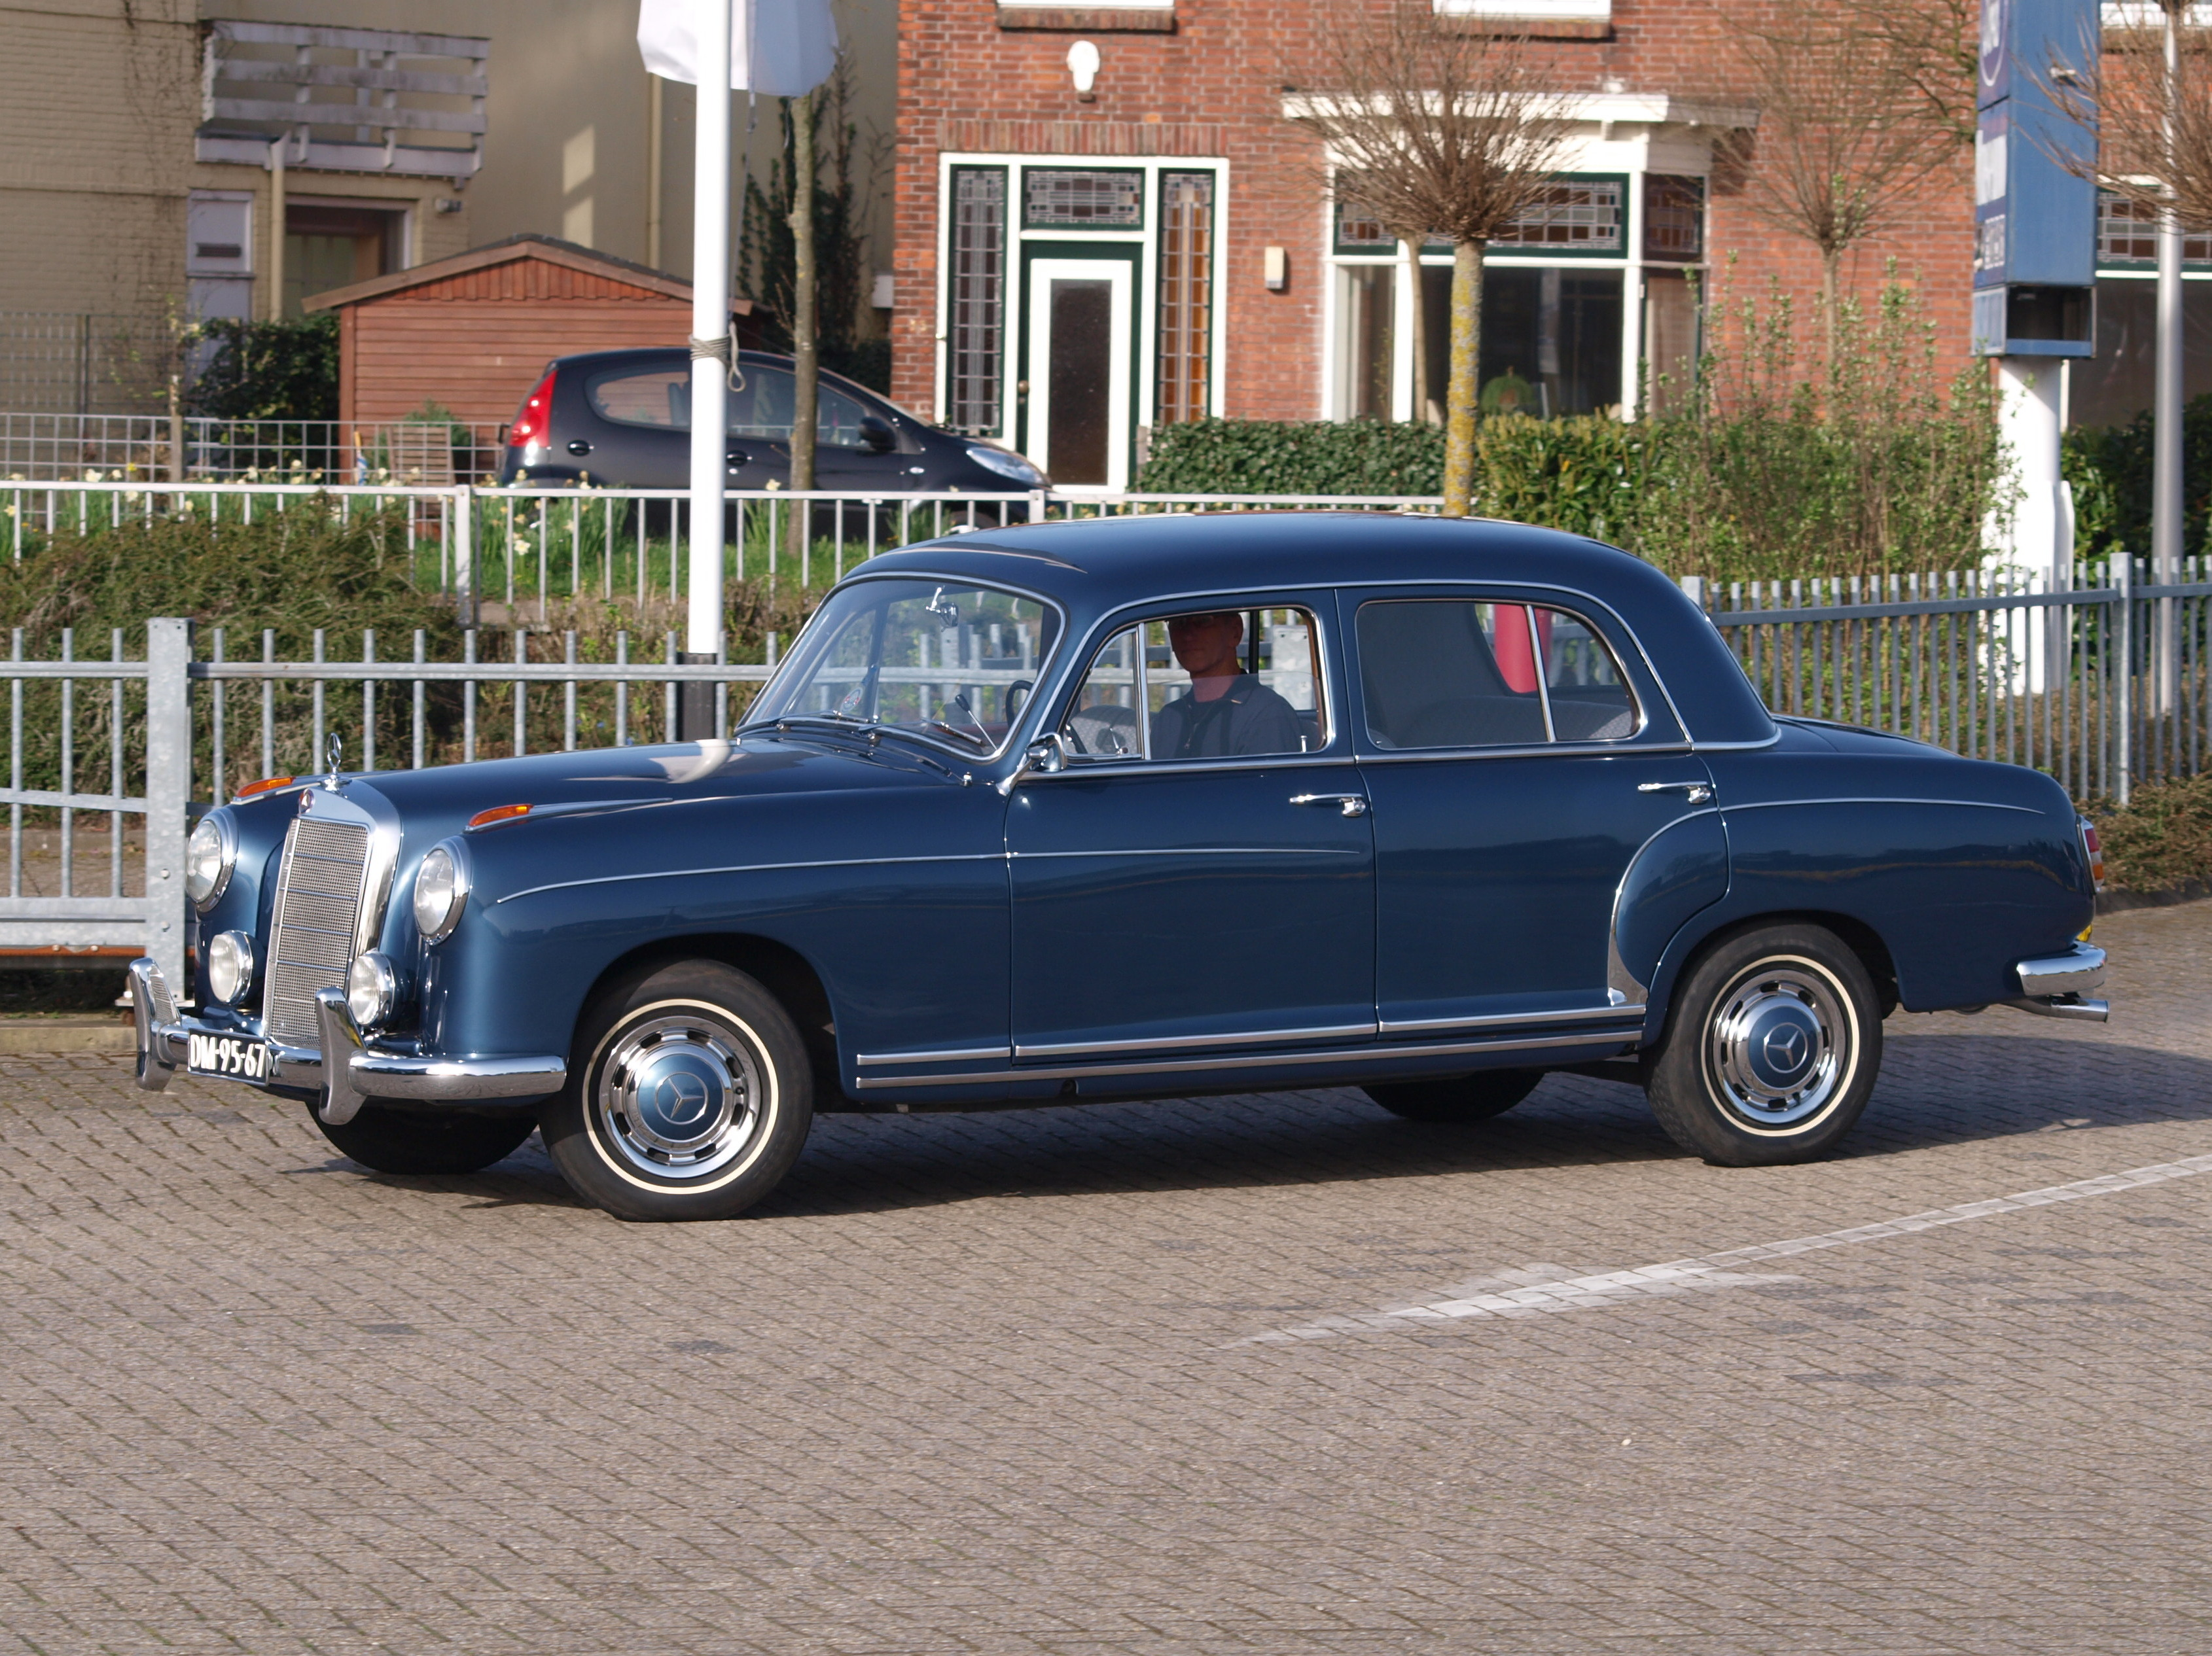 1959 mercedes benz 220s information and photos momentcar For1959 Mercedes Benz 220s